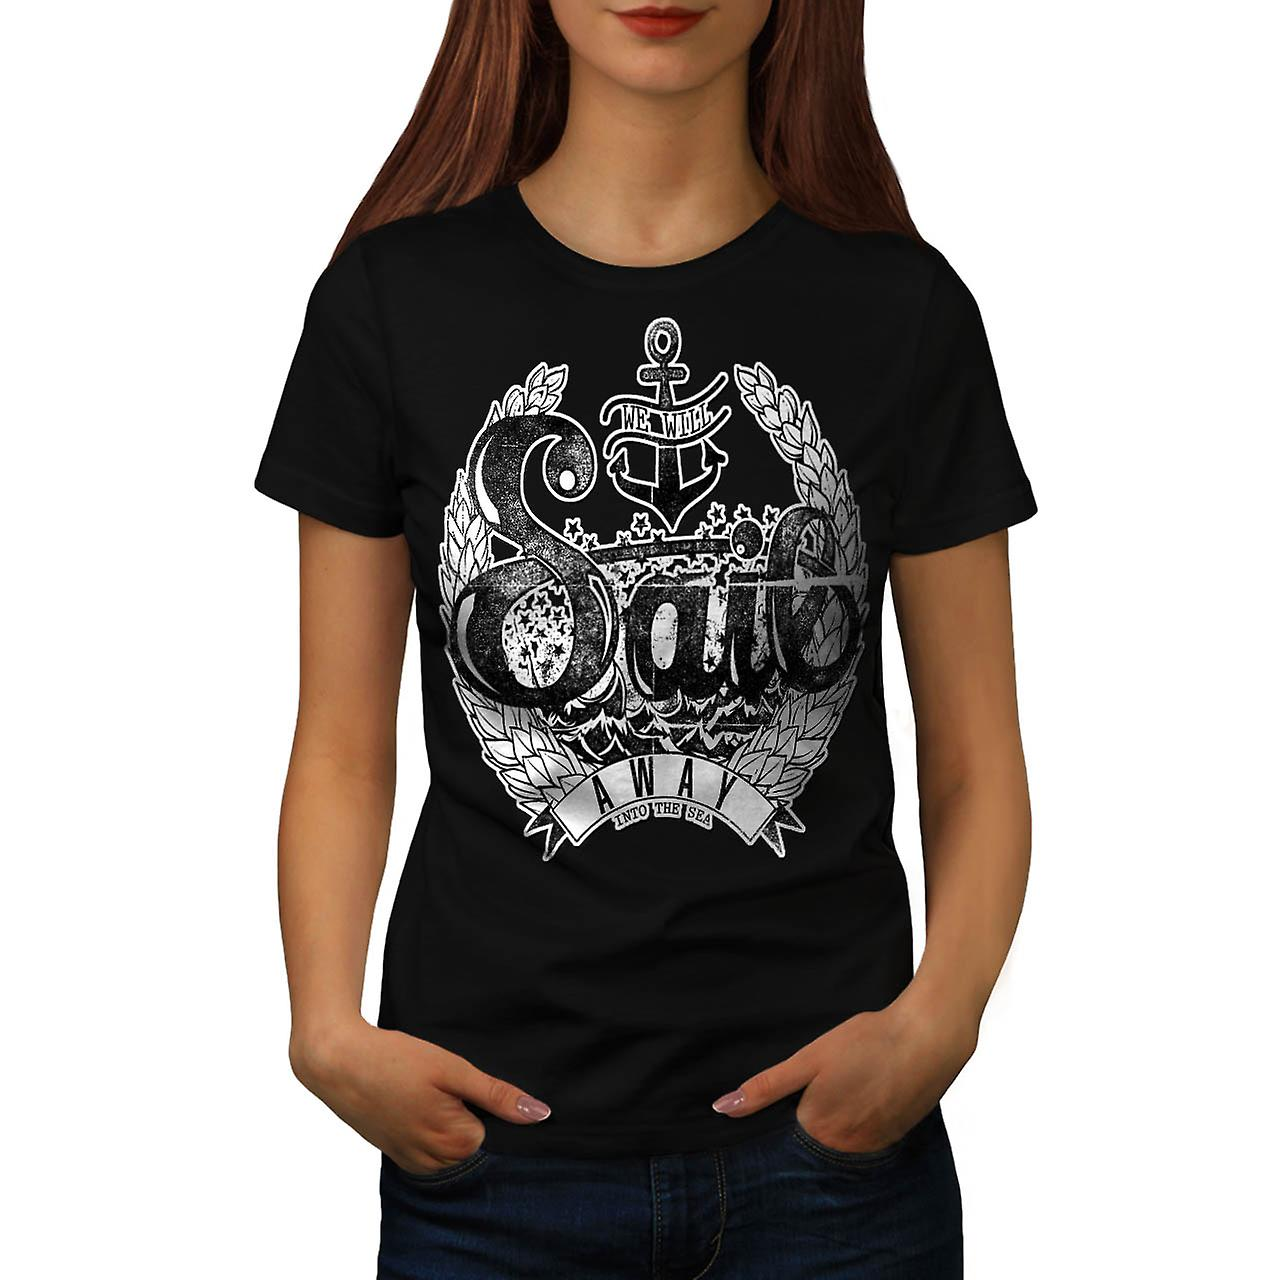 Sail Away in zee Boot Cruise vrouwen zwart T-shirt | Wellcoda